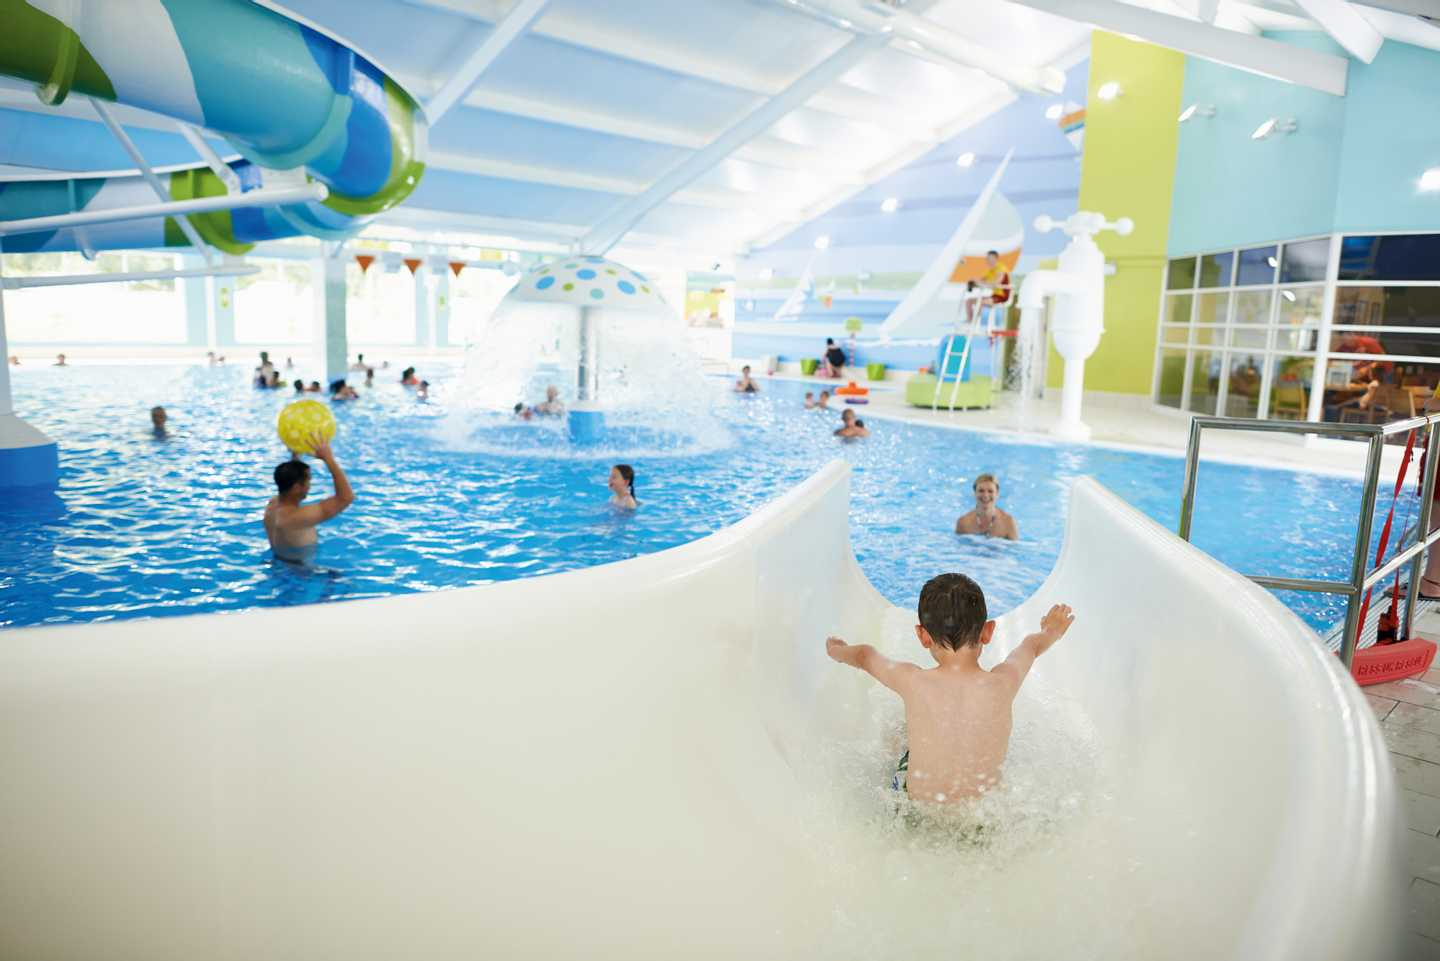 A guest sliding down the indoor pool slide